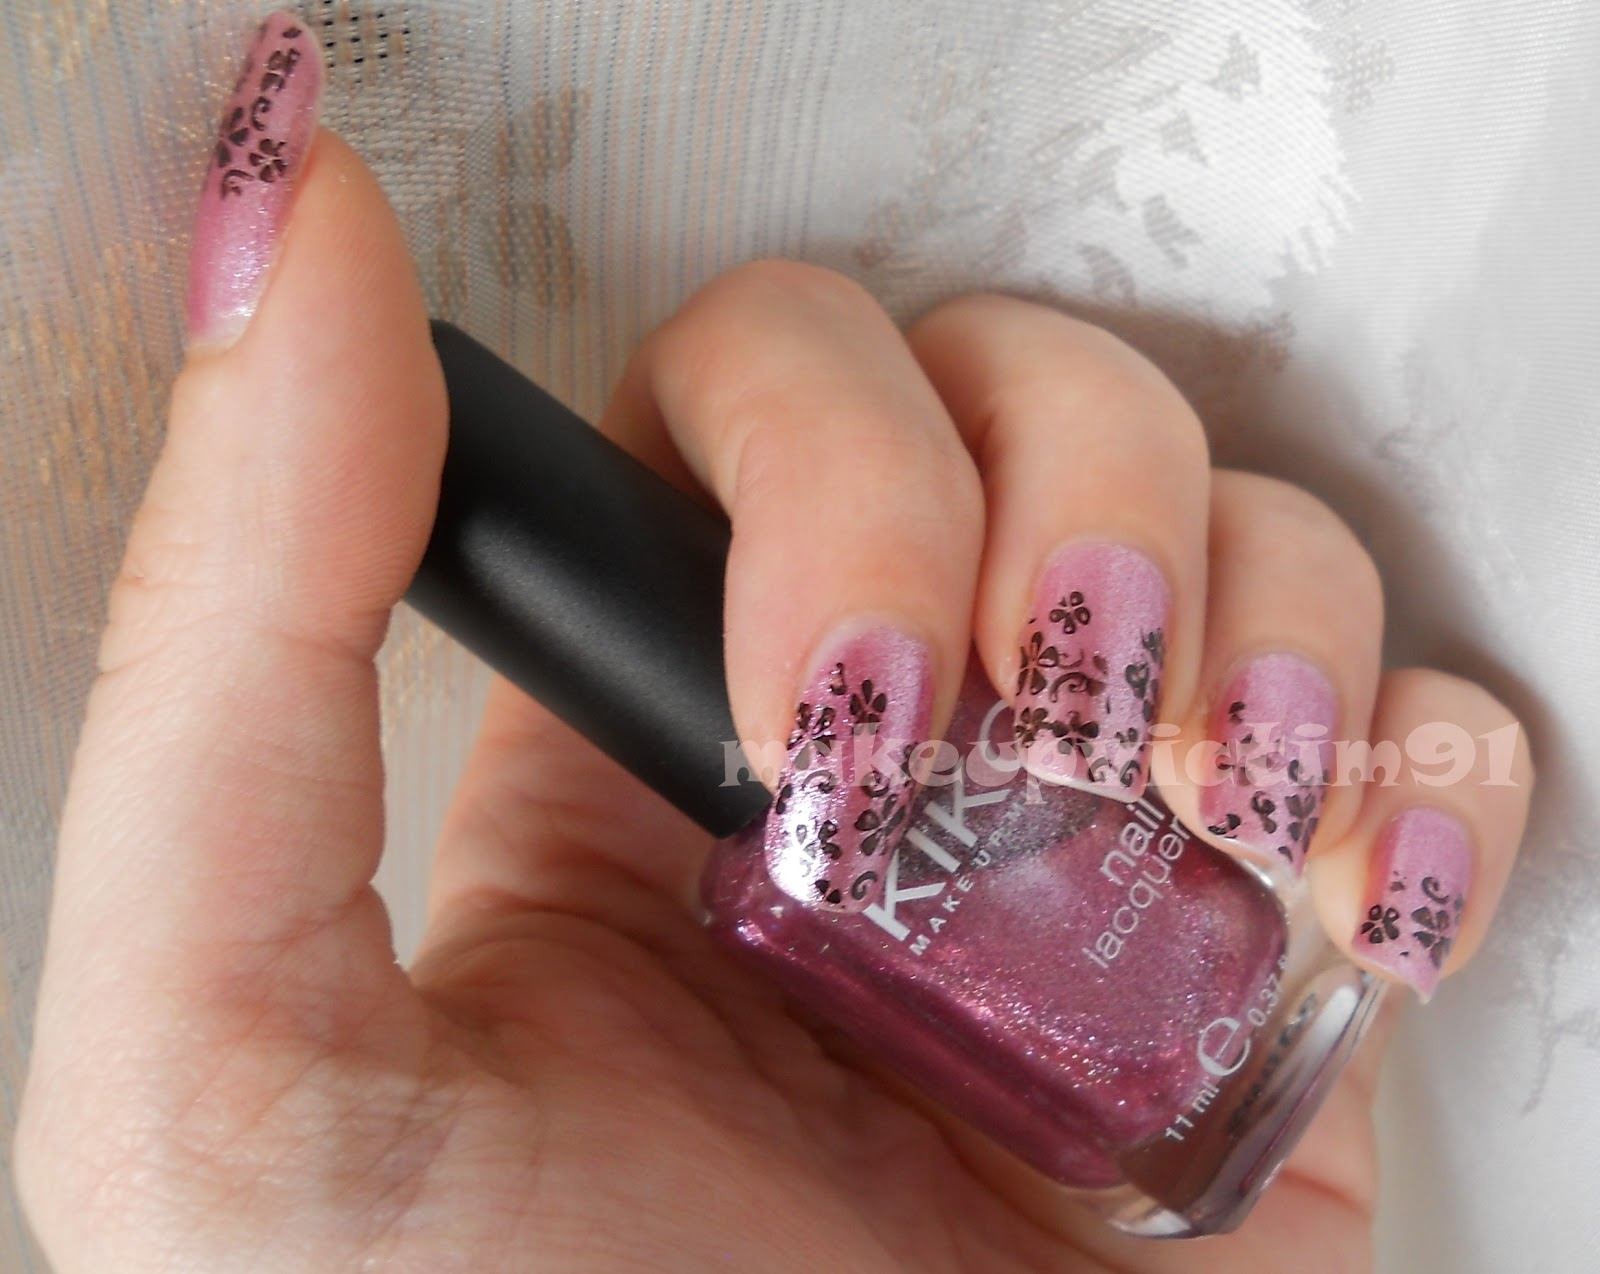 Macef Eventi Fatto Ad Arte Art Flowers : Nail art black flower makeup victim